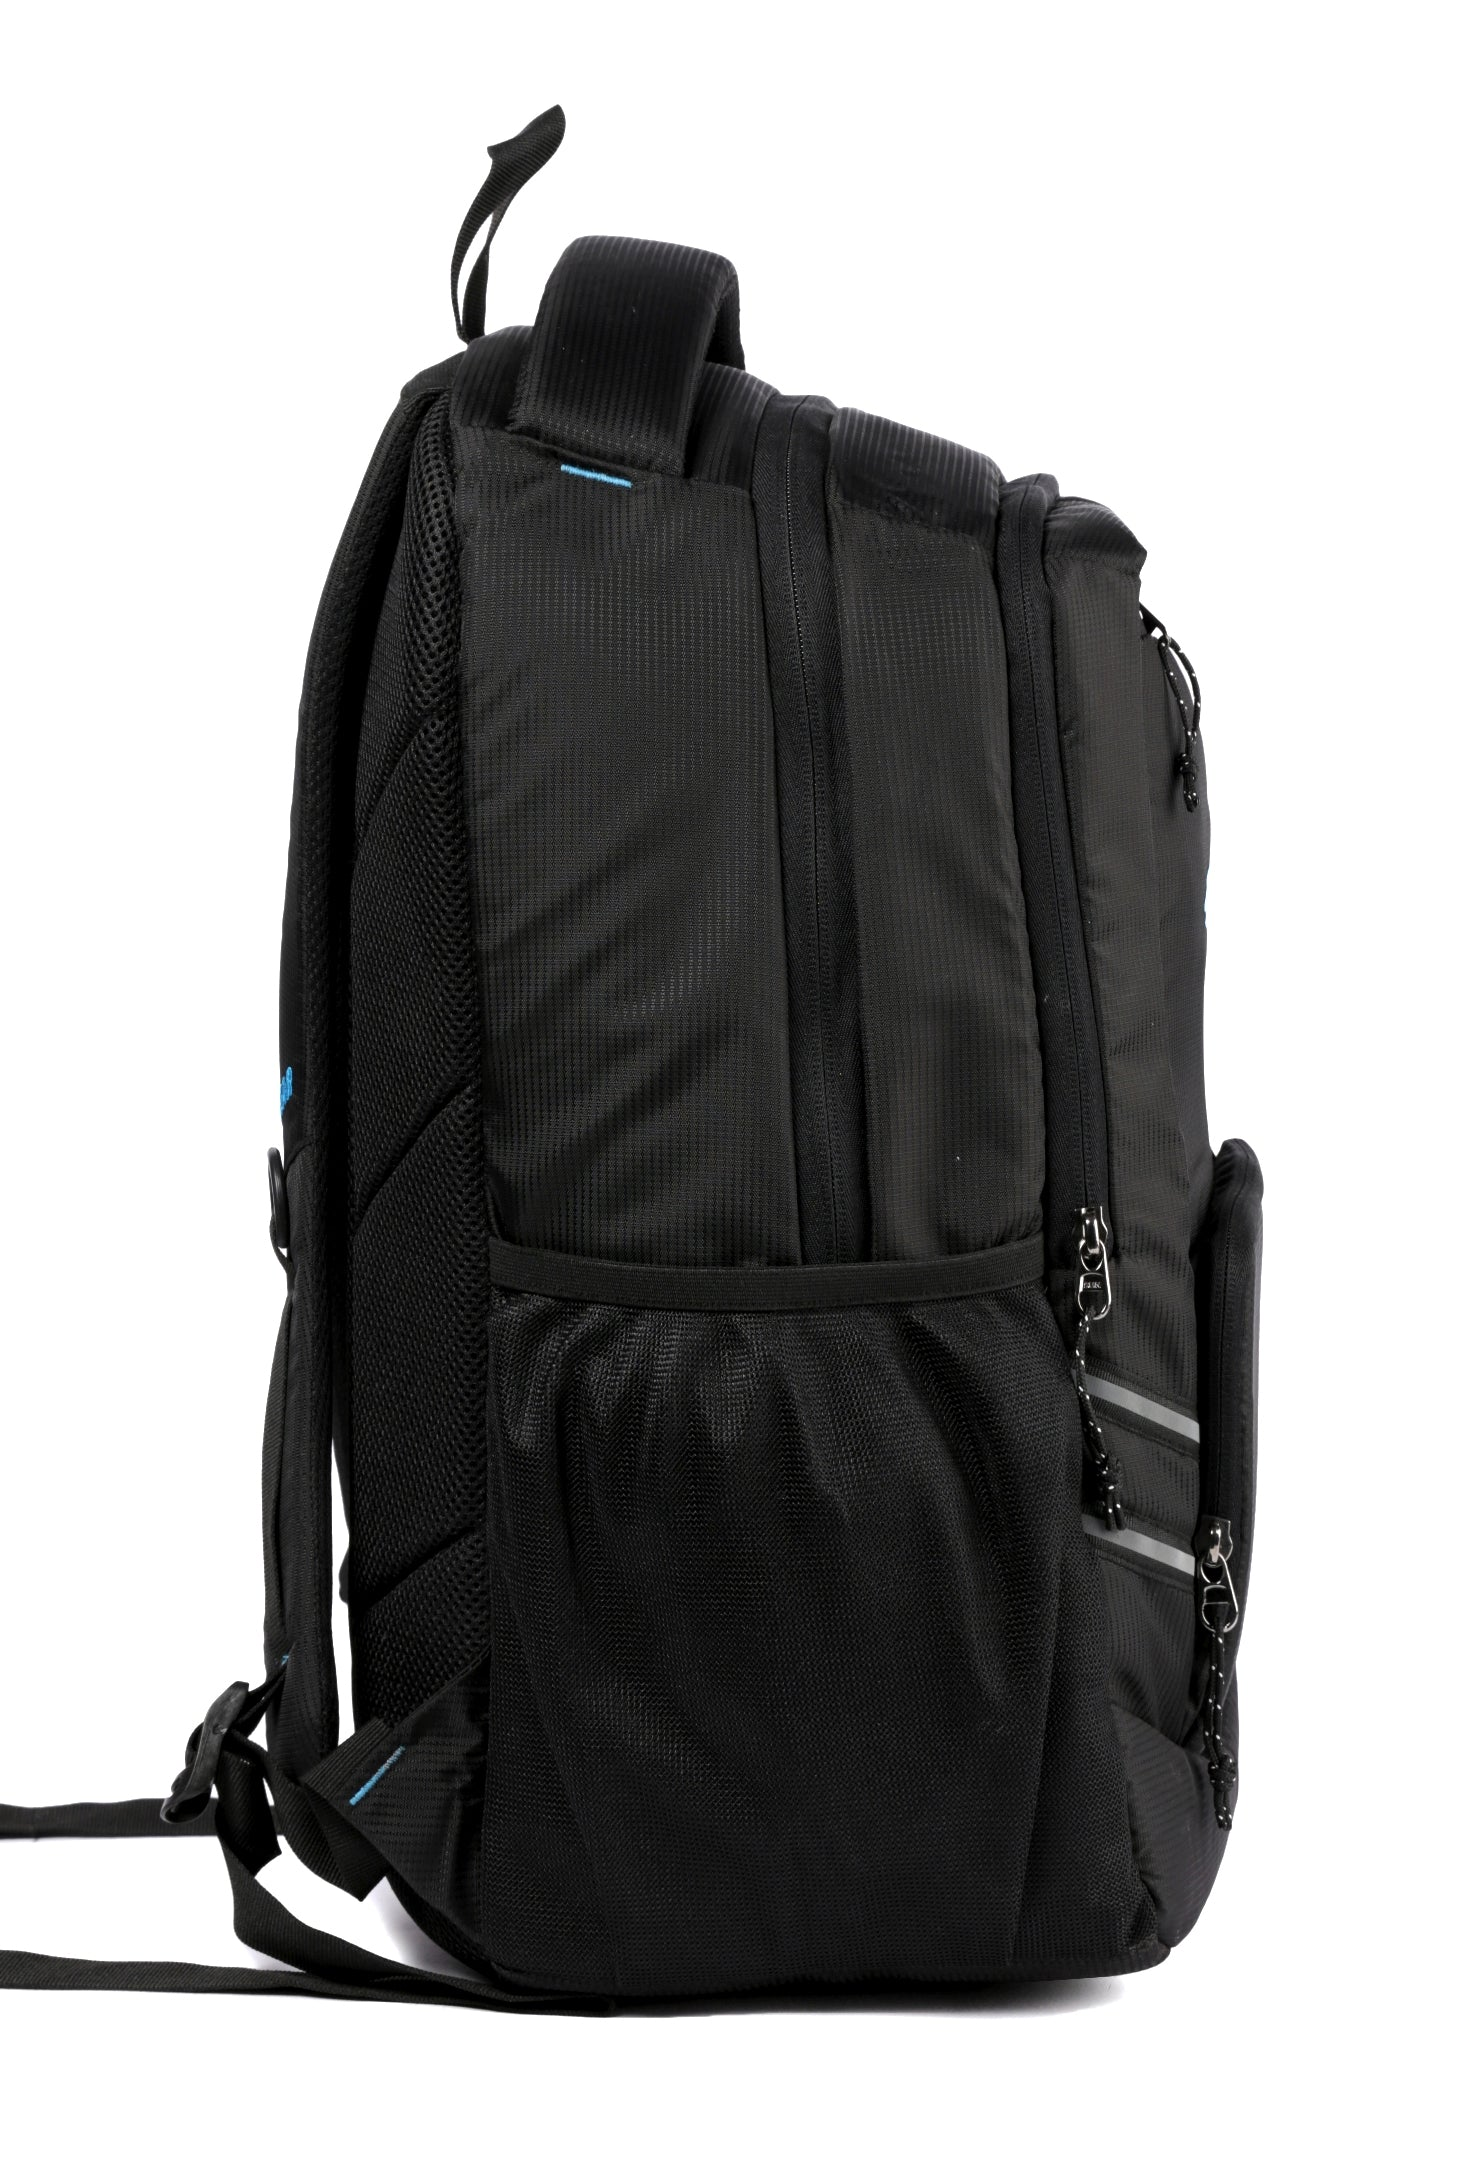 F Gear Intellect Doby Black 32 Liters Backpack (3146)